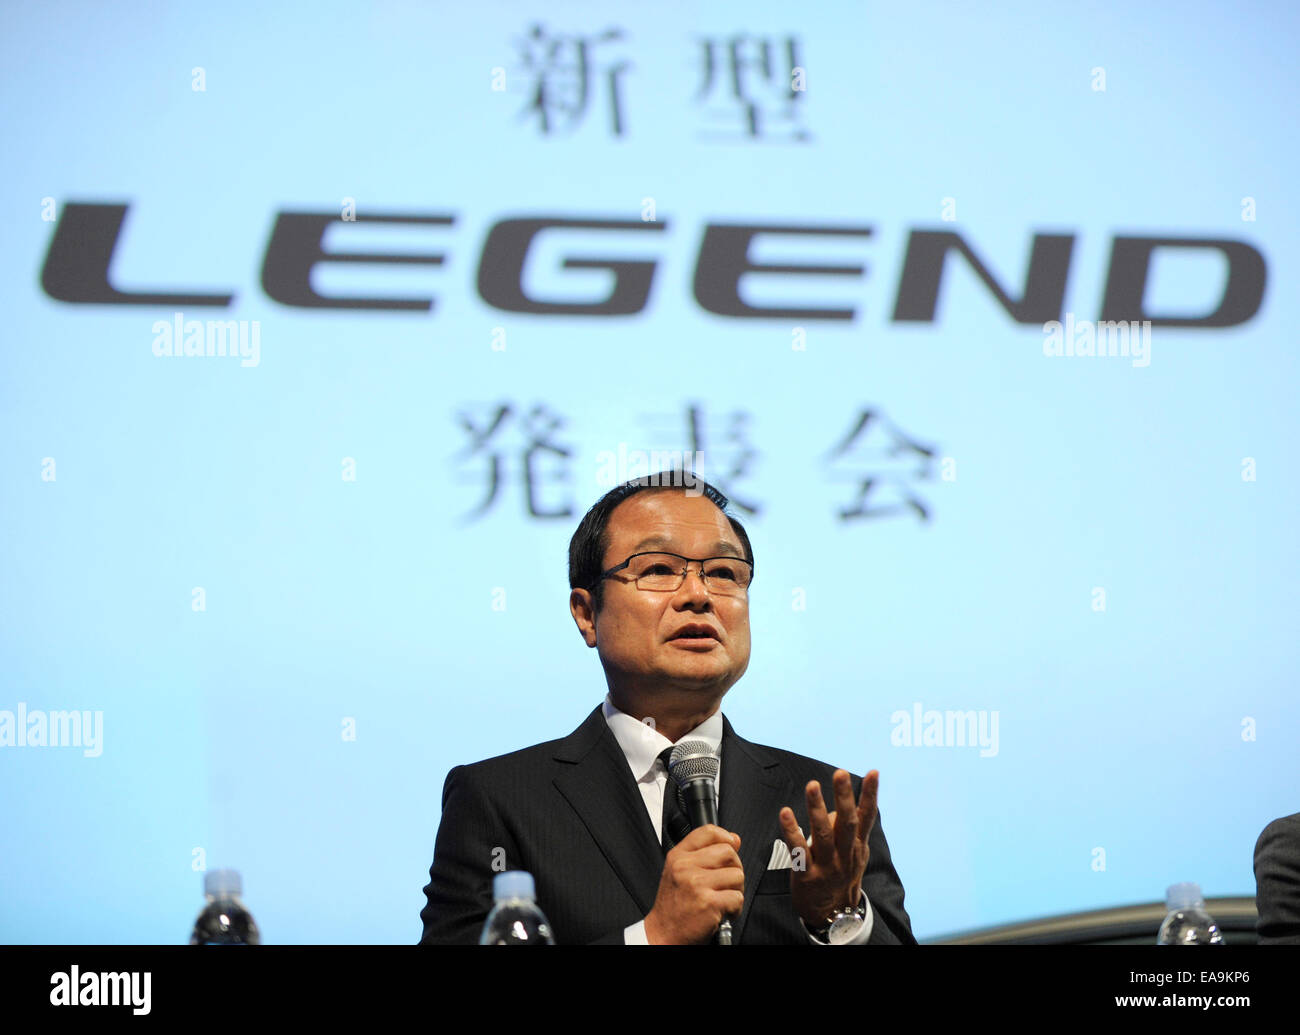 Takanobu Ito Japans Auato Maker Honda Motors President And CEO Speaks During A Press Conference To Unveil Its Renewed Model LEGEND In Tokyo Japan